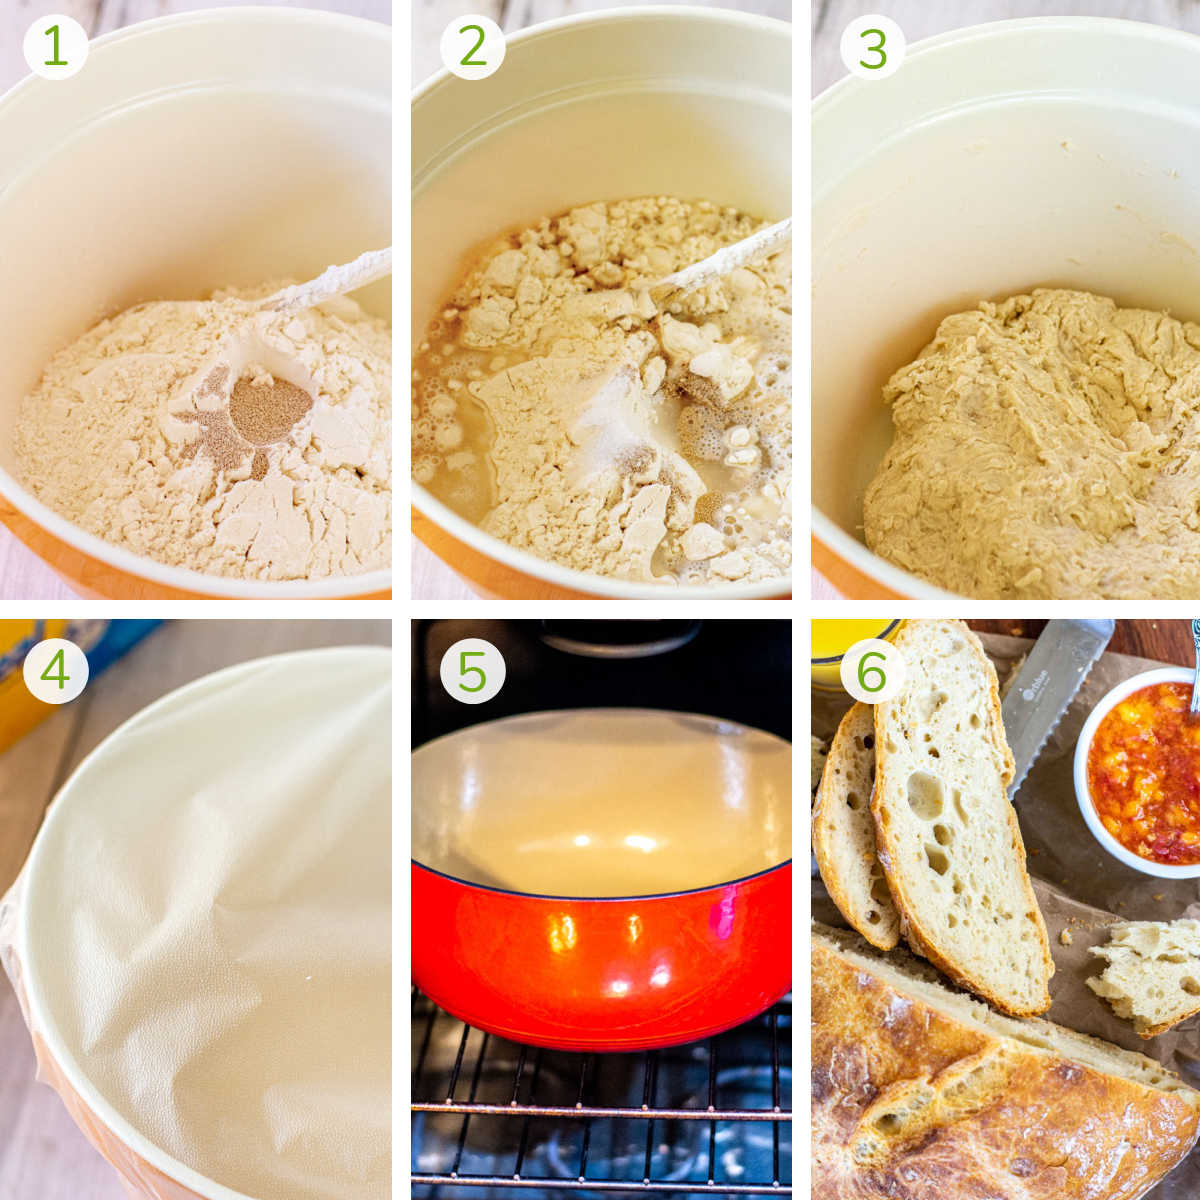 six process photos showing combining the ingredients in a bowl, letting the dough rise, heating the pan and baking.